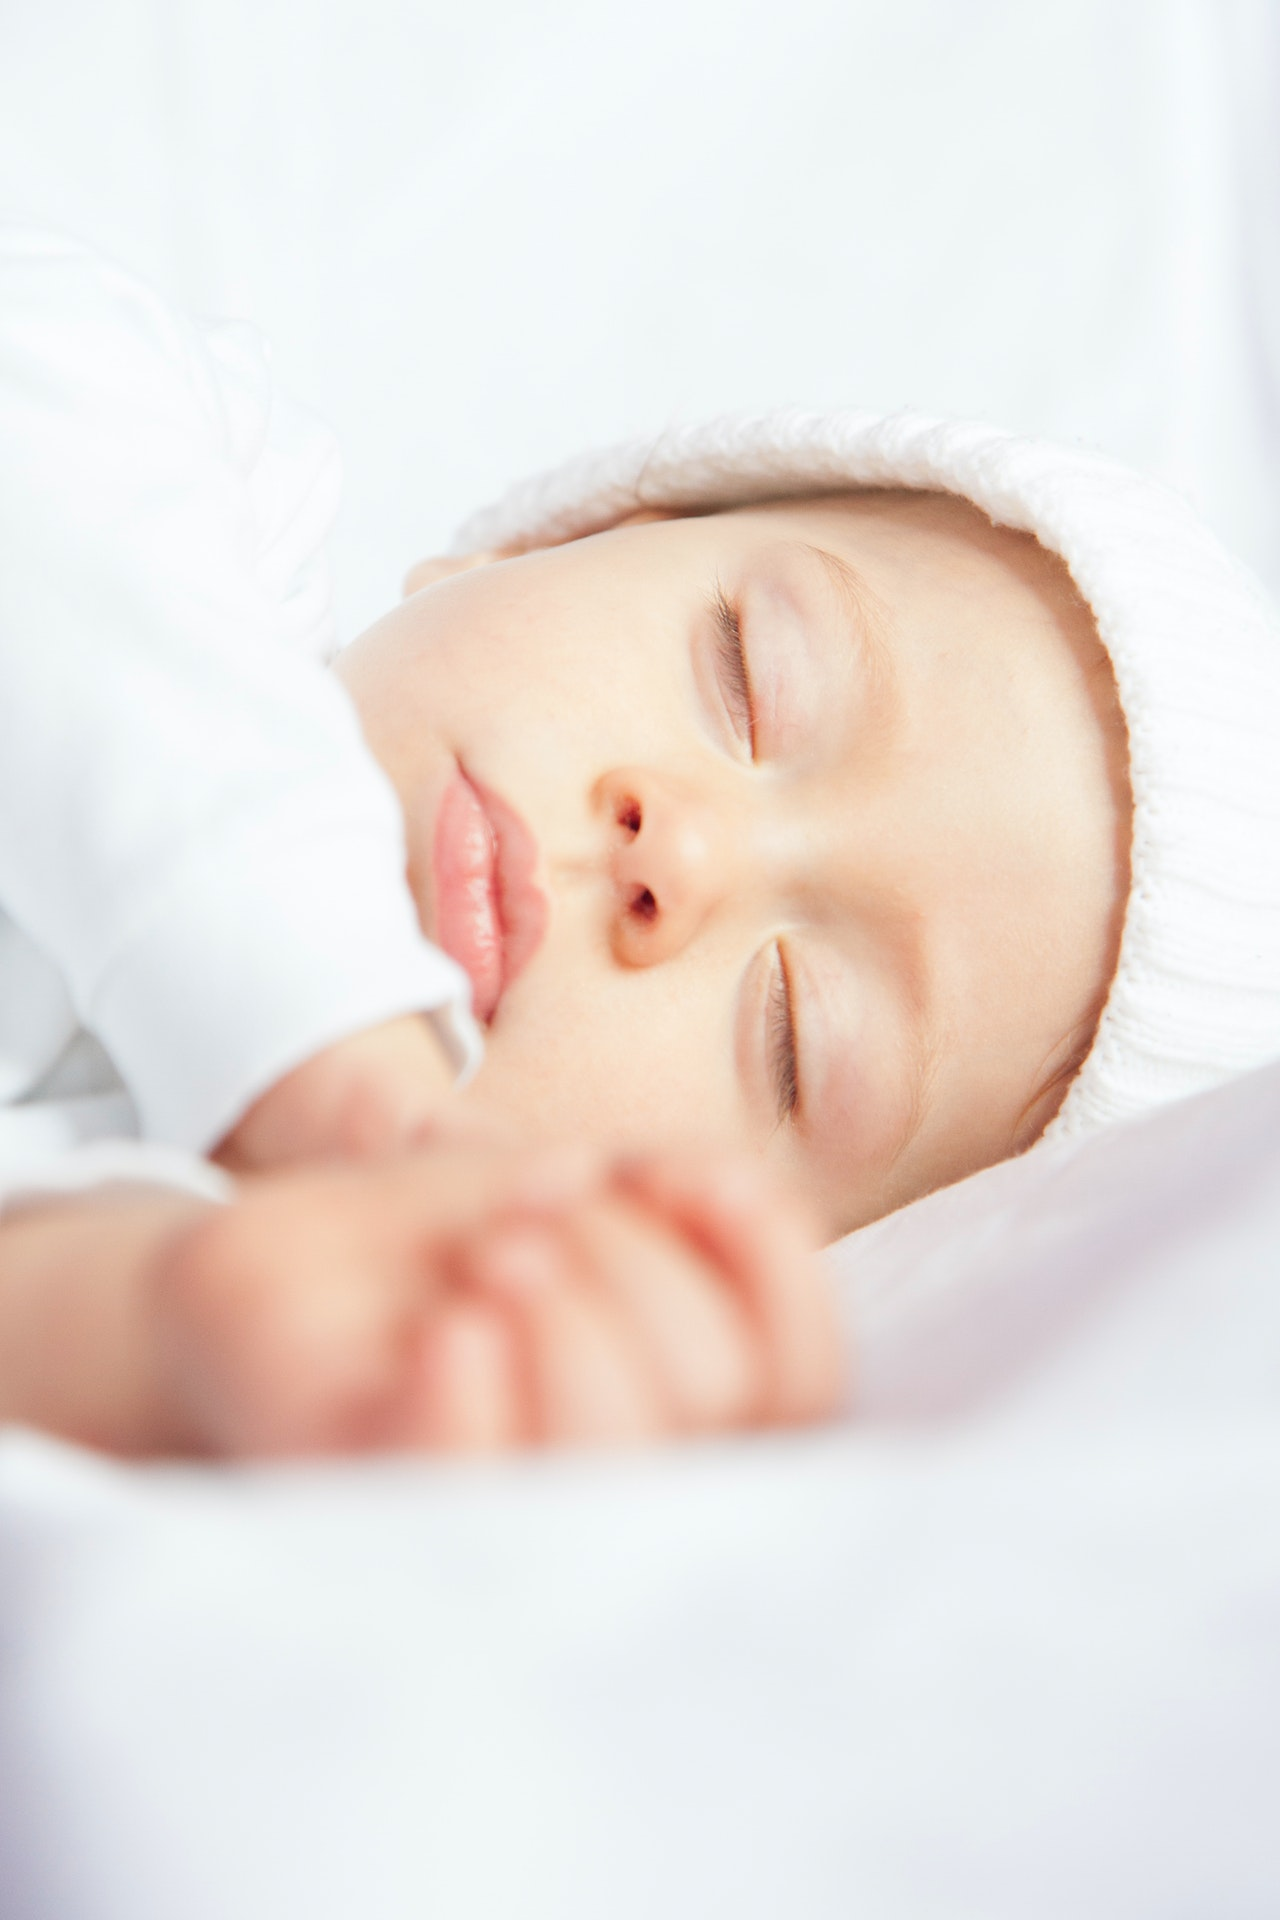 5 Tips to Help Get Your Finicky Little One to Sleep